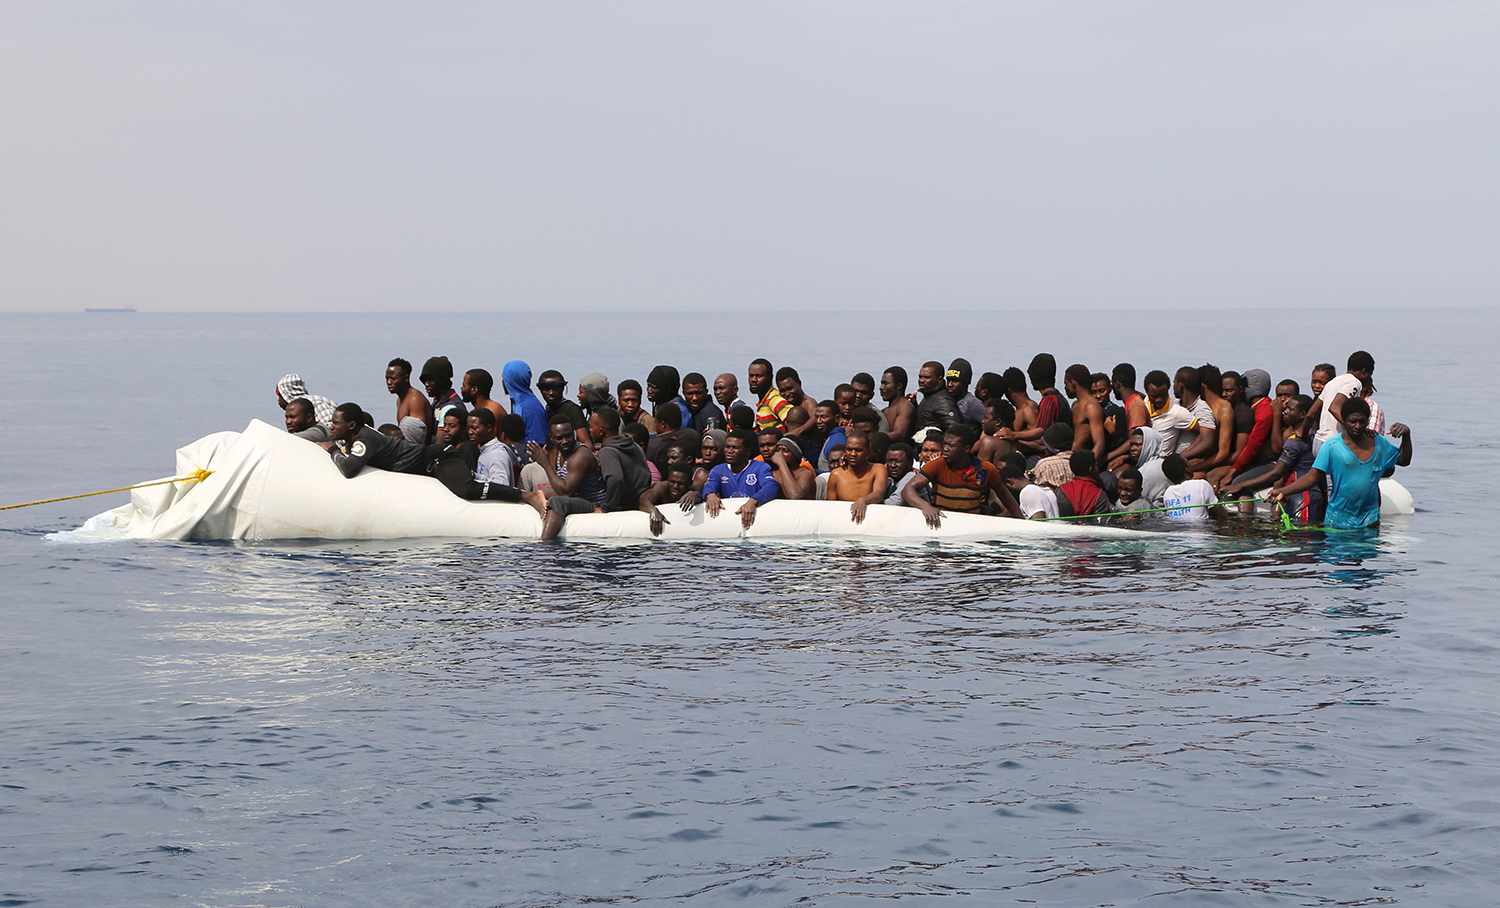 TOPSHOT - Migrants wait to be rescued from a sinking dingey off the Libyan coasal town of Zawiyah, east of the capital, on March 20, 2017, as they attempted to cross from the Mediterranean to Europe. Libya has long been a stepping stone for migrants dreaming of a better life in Europe, but people smugglers have stepped up their lucrative trade in the chaos since the 2011 ouster of longtime dictator Moamer Kadhafi. / AFP PHOTO / Abdullah ELGAMOUDI / TT / kod 444